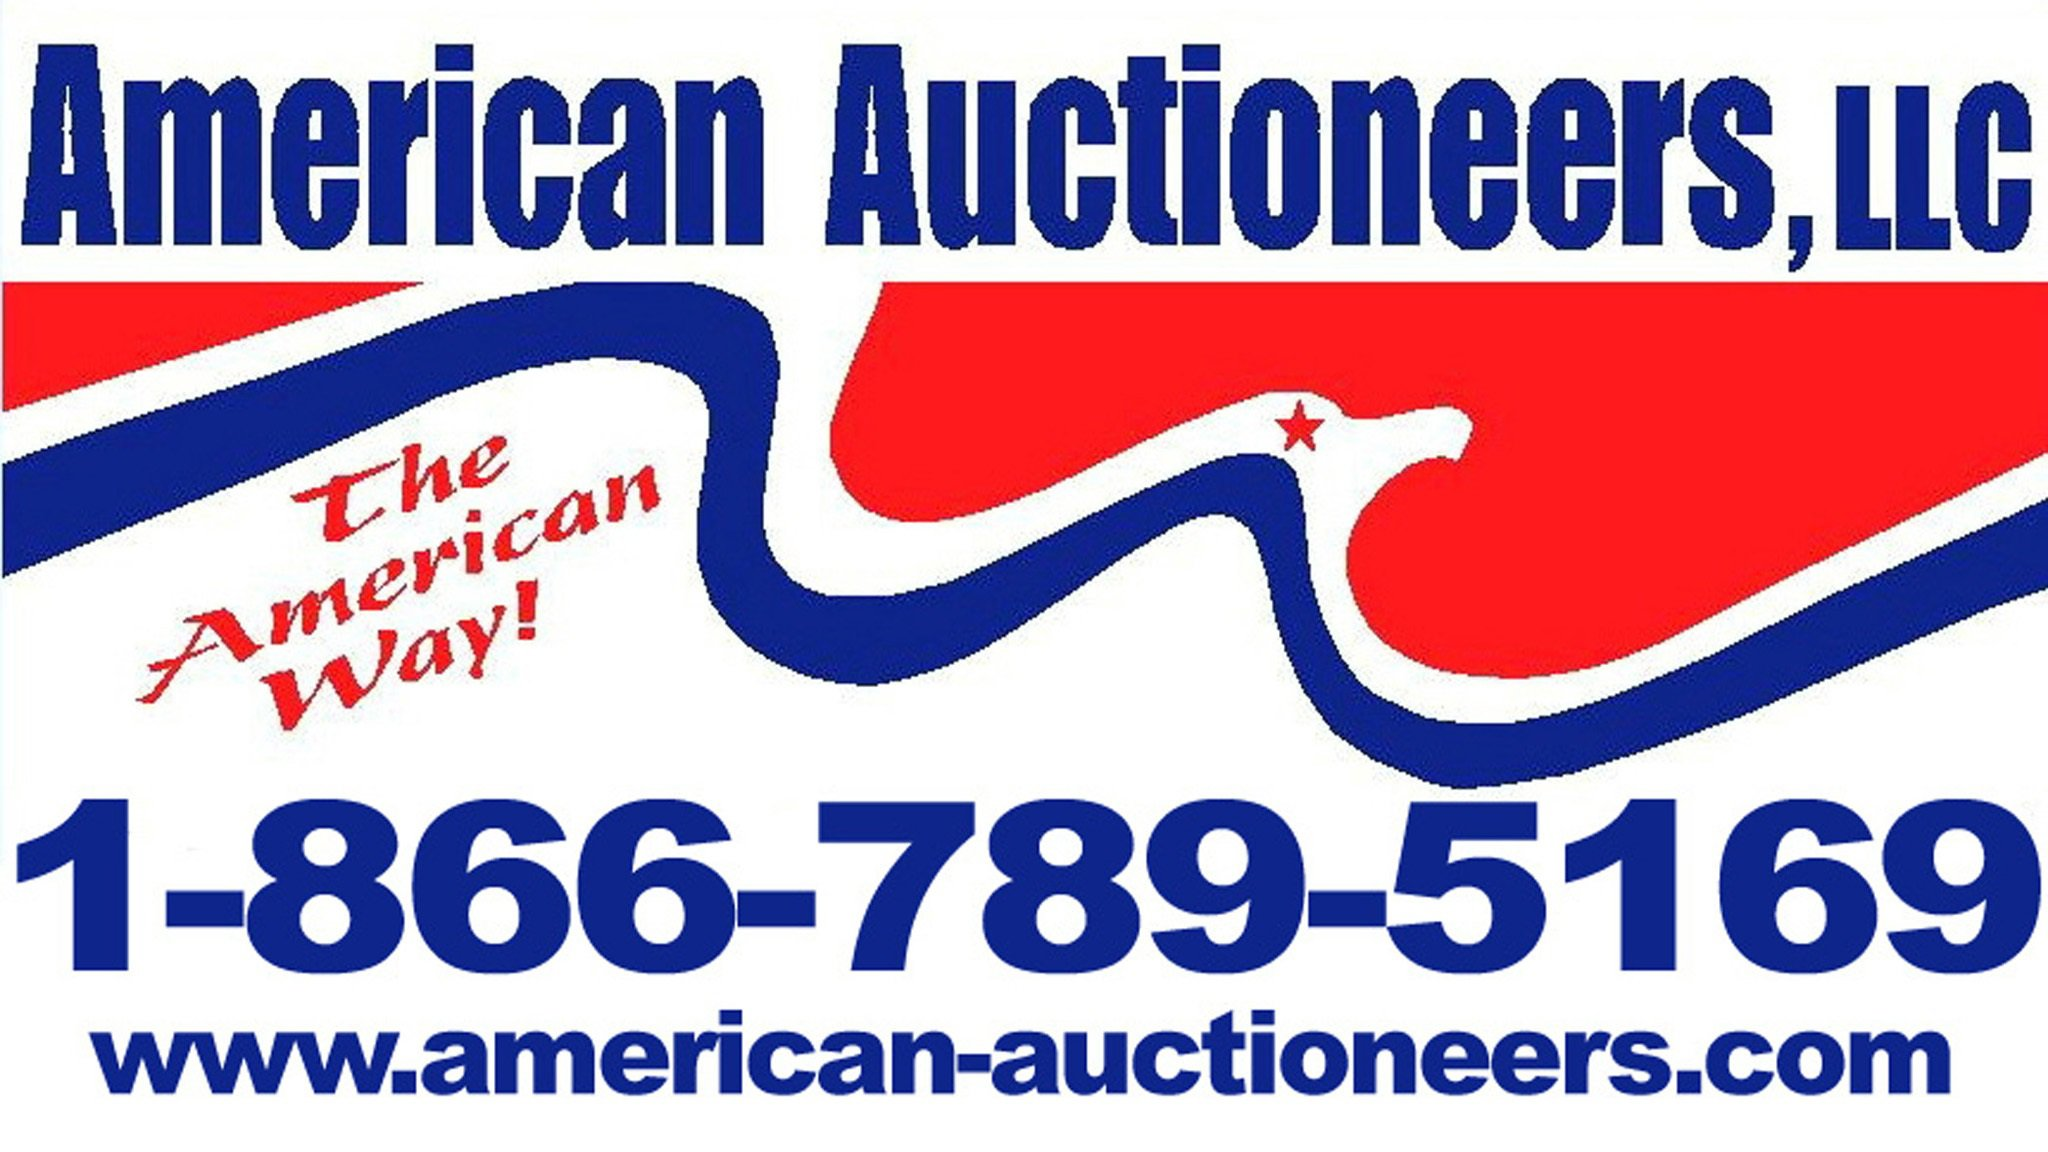 American Auctioneers, LLC